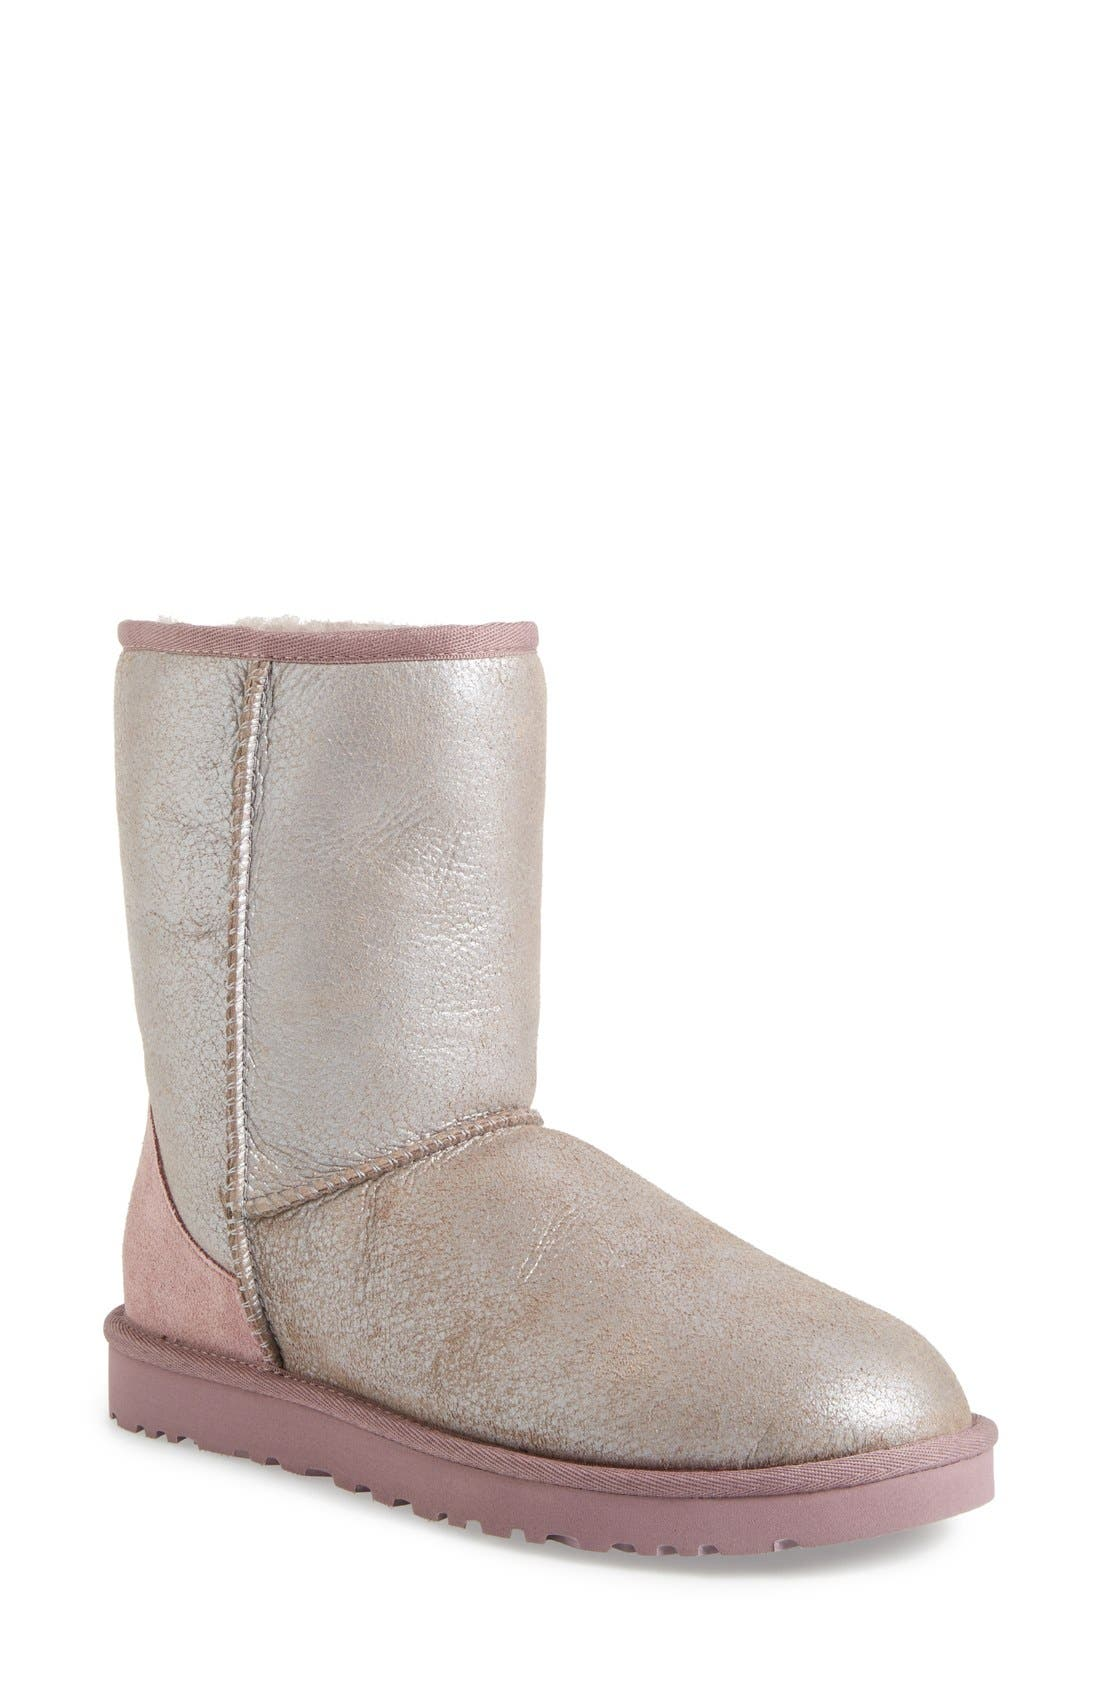 Alternate Image 1 Selected - UGG® 'Classic Short - Metallic' Boot (Women)